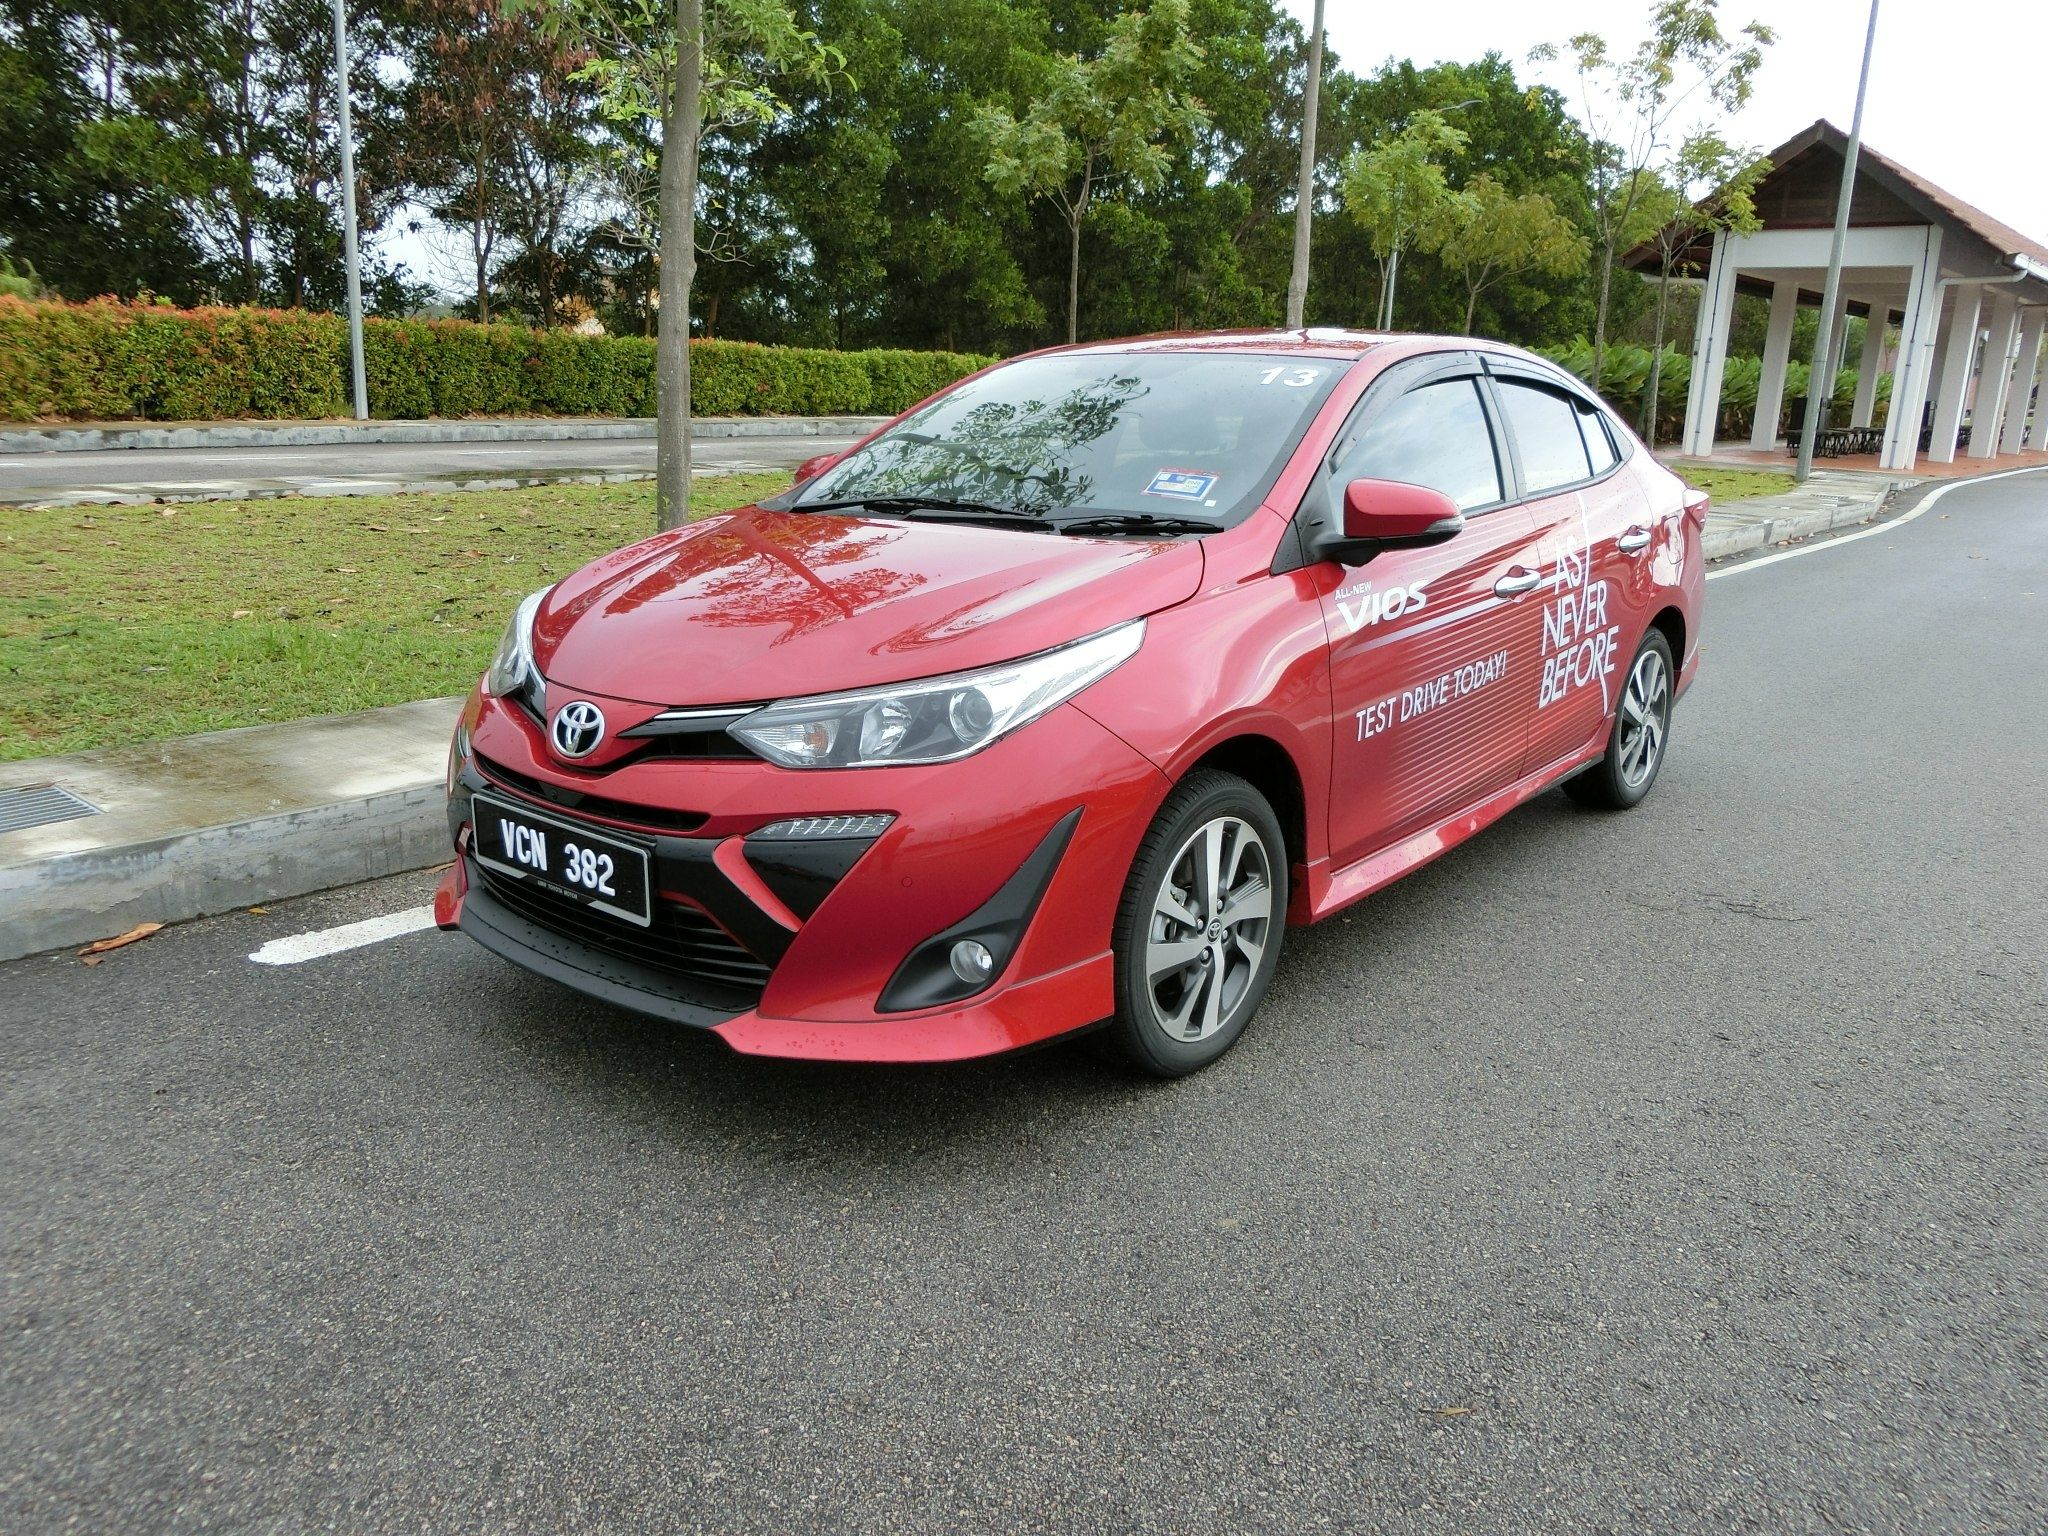 Toyota Vios 2020 Malaysia Price Review And Specs Toyota Vios Toyota Car